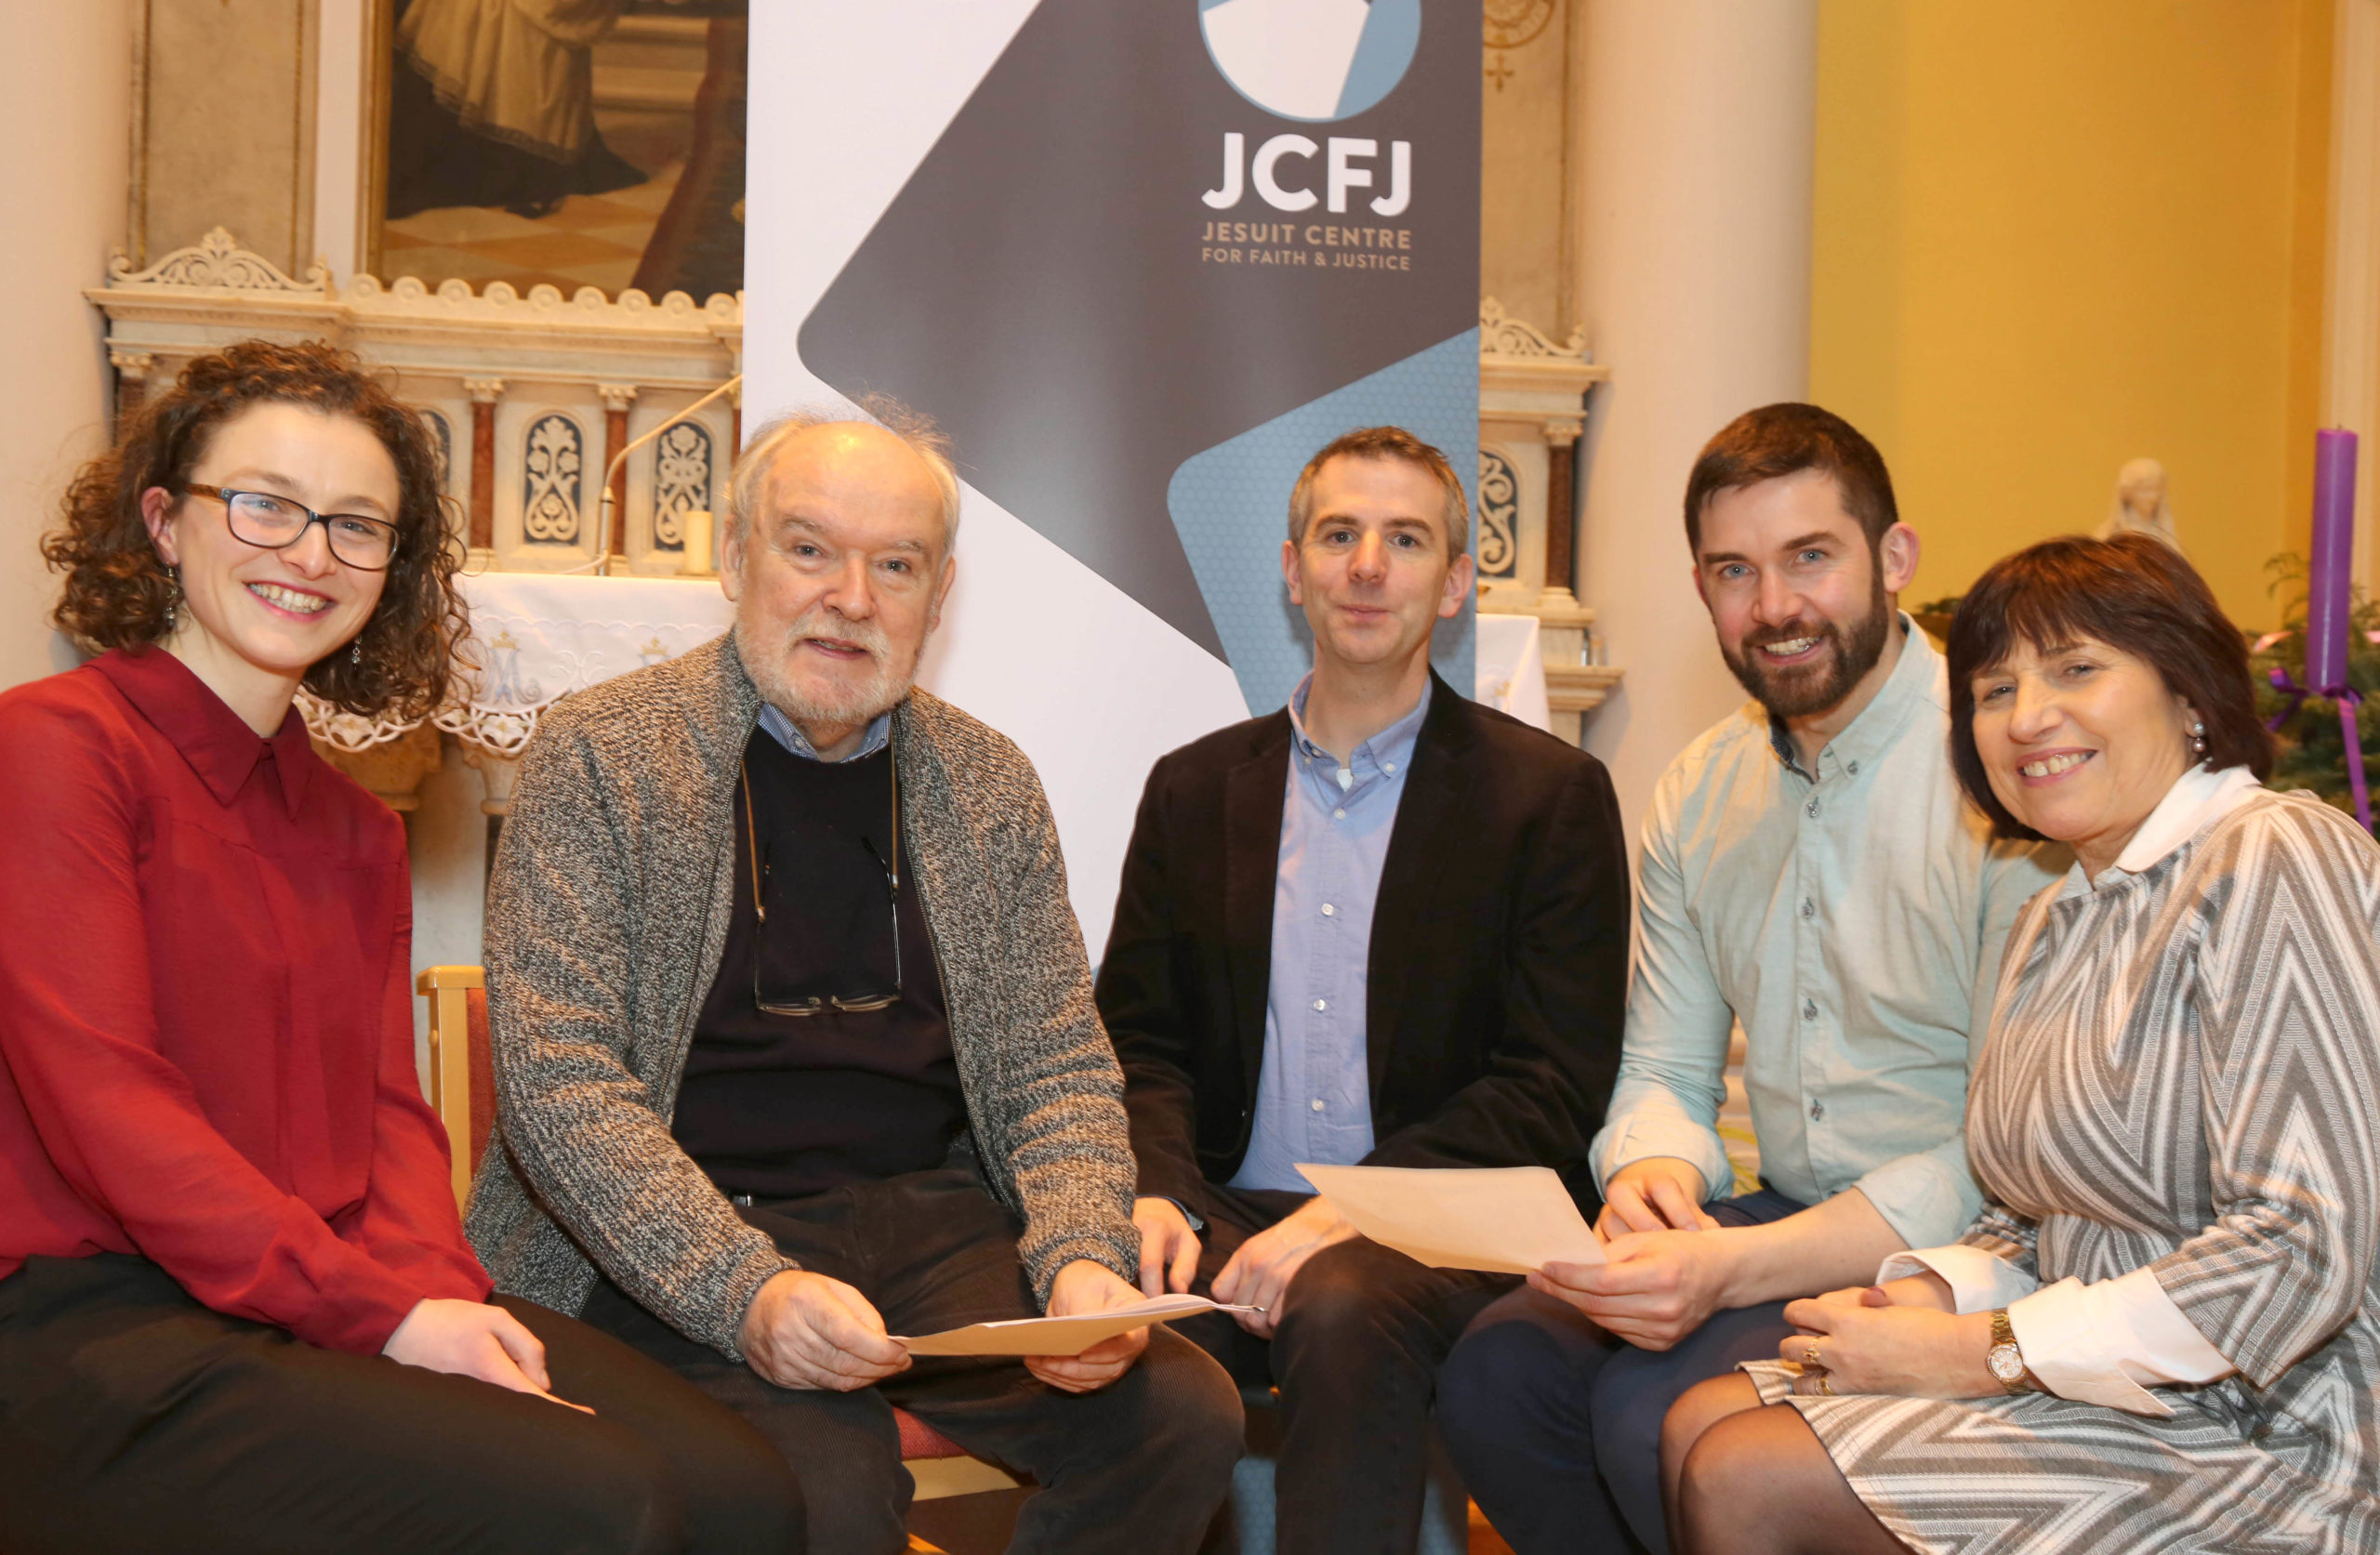 Launch of the JCFJ Strategic Plan (2019-2023)